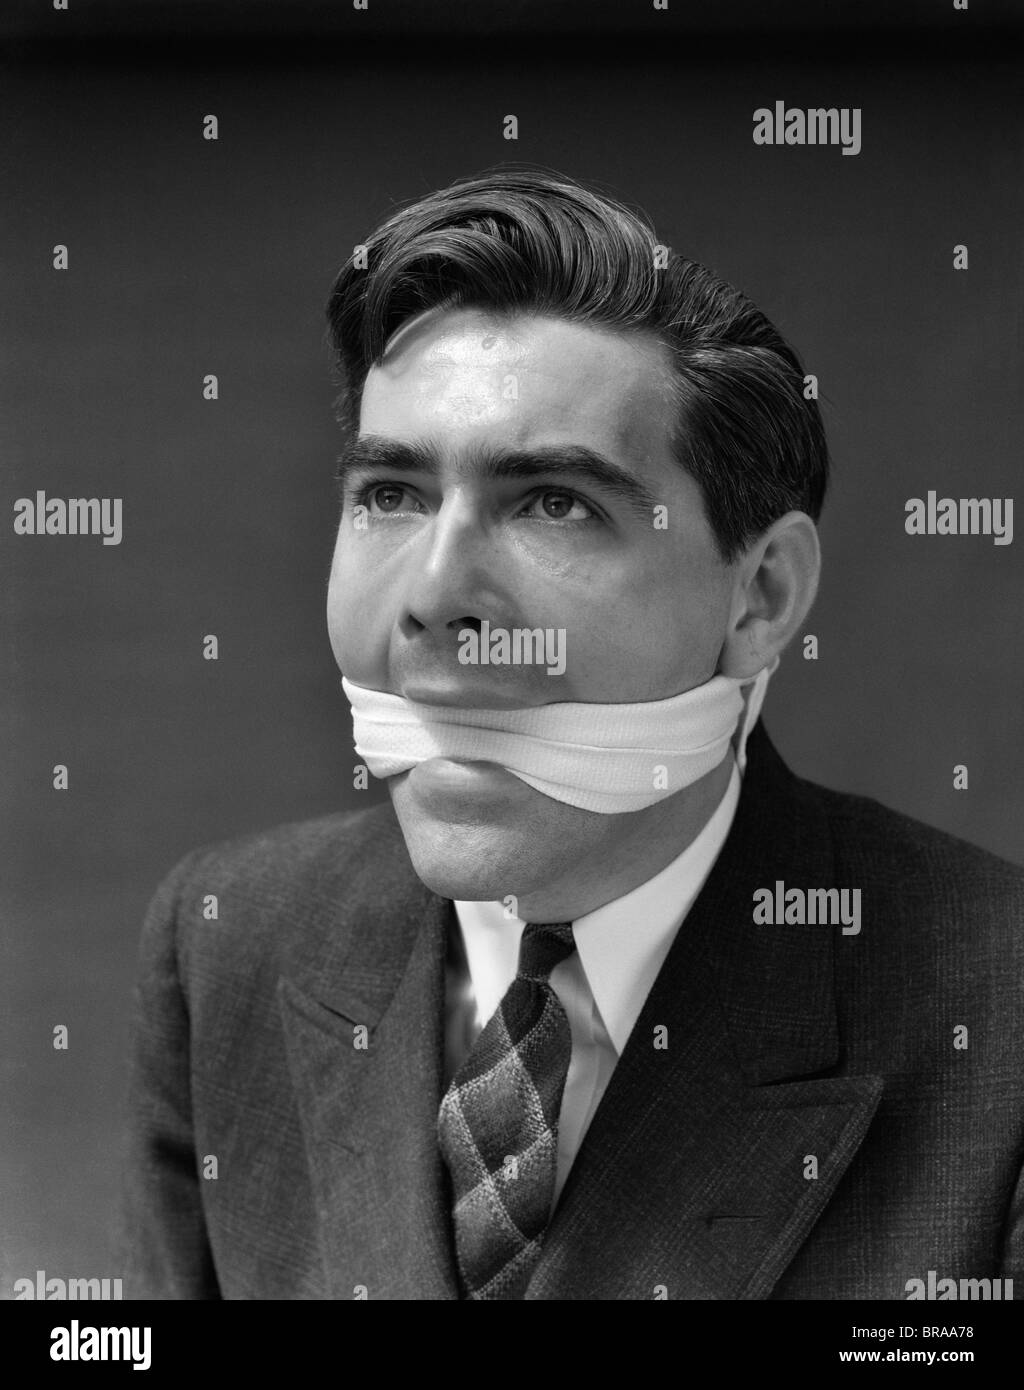 1930s PORTRAIT OF MAN WITH GAG IN MOUTH - Stock Image